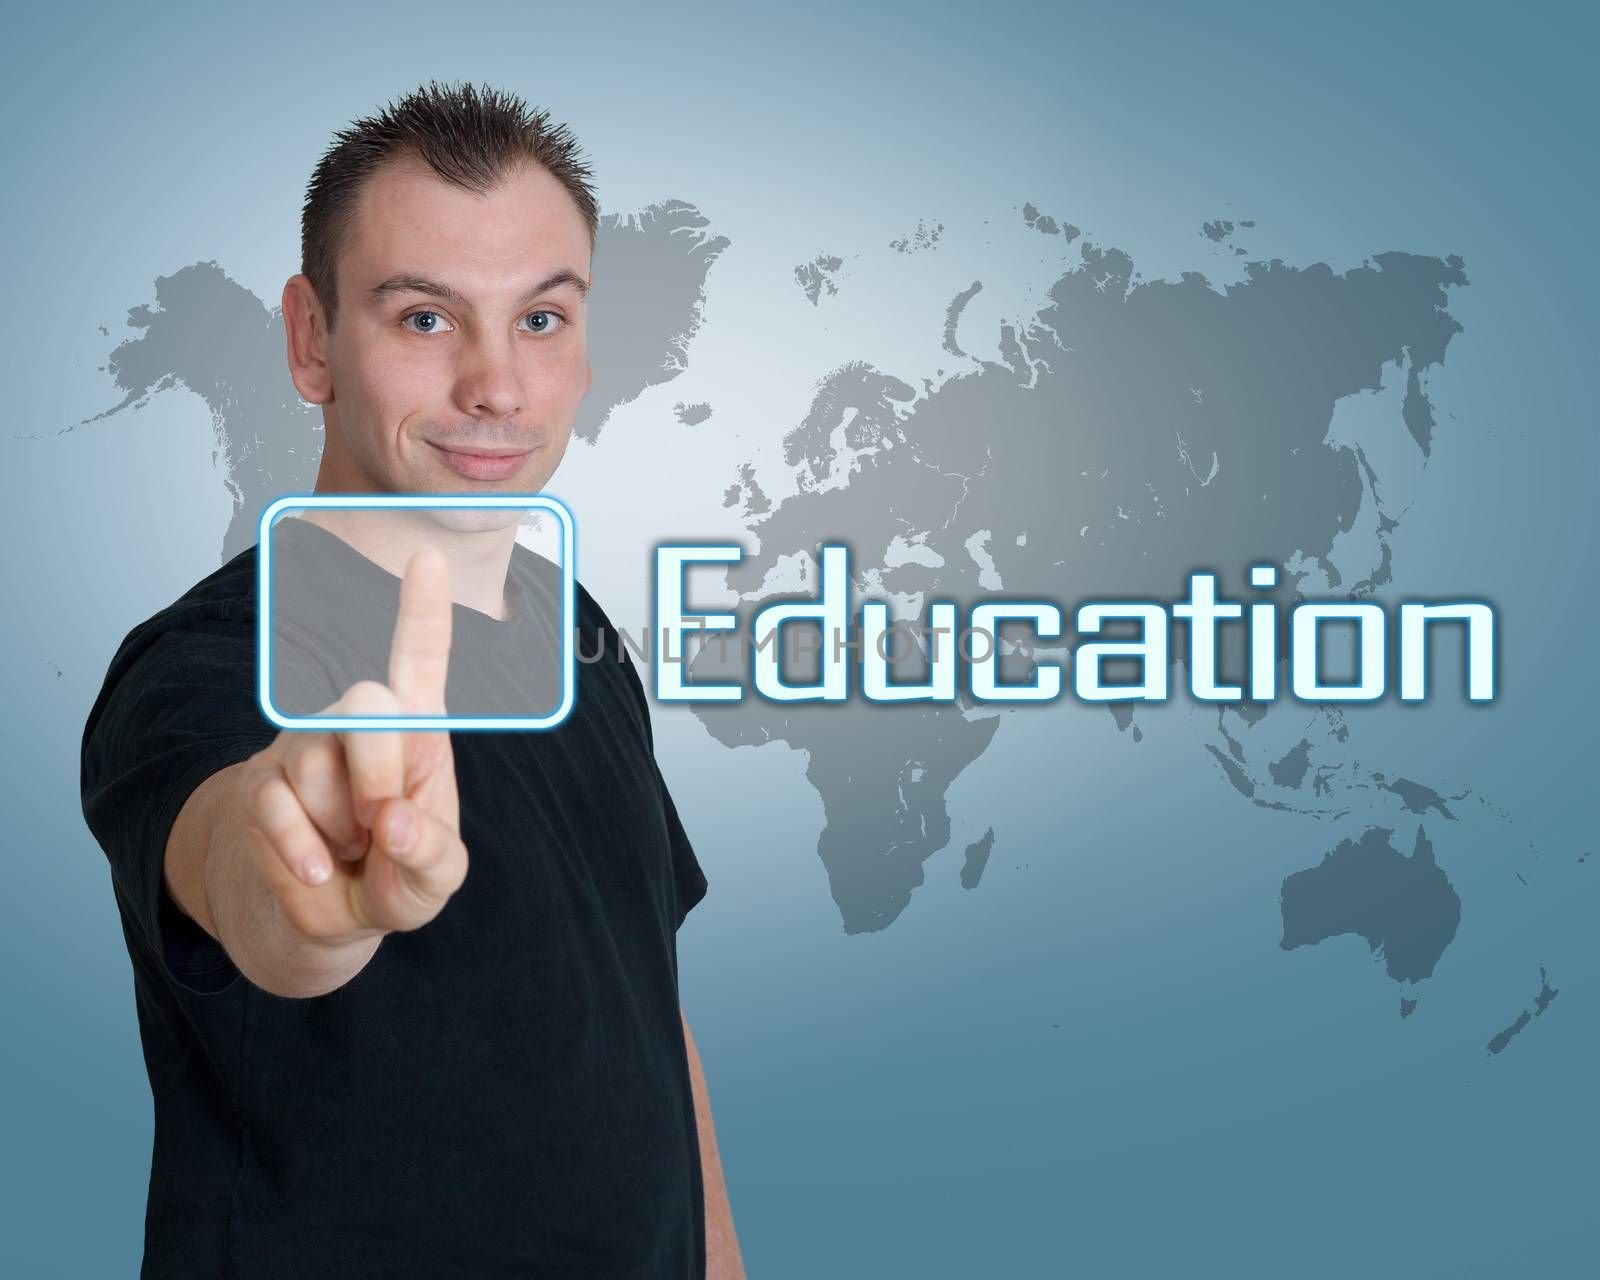 Young man press digital Education button on interface in front of him